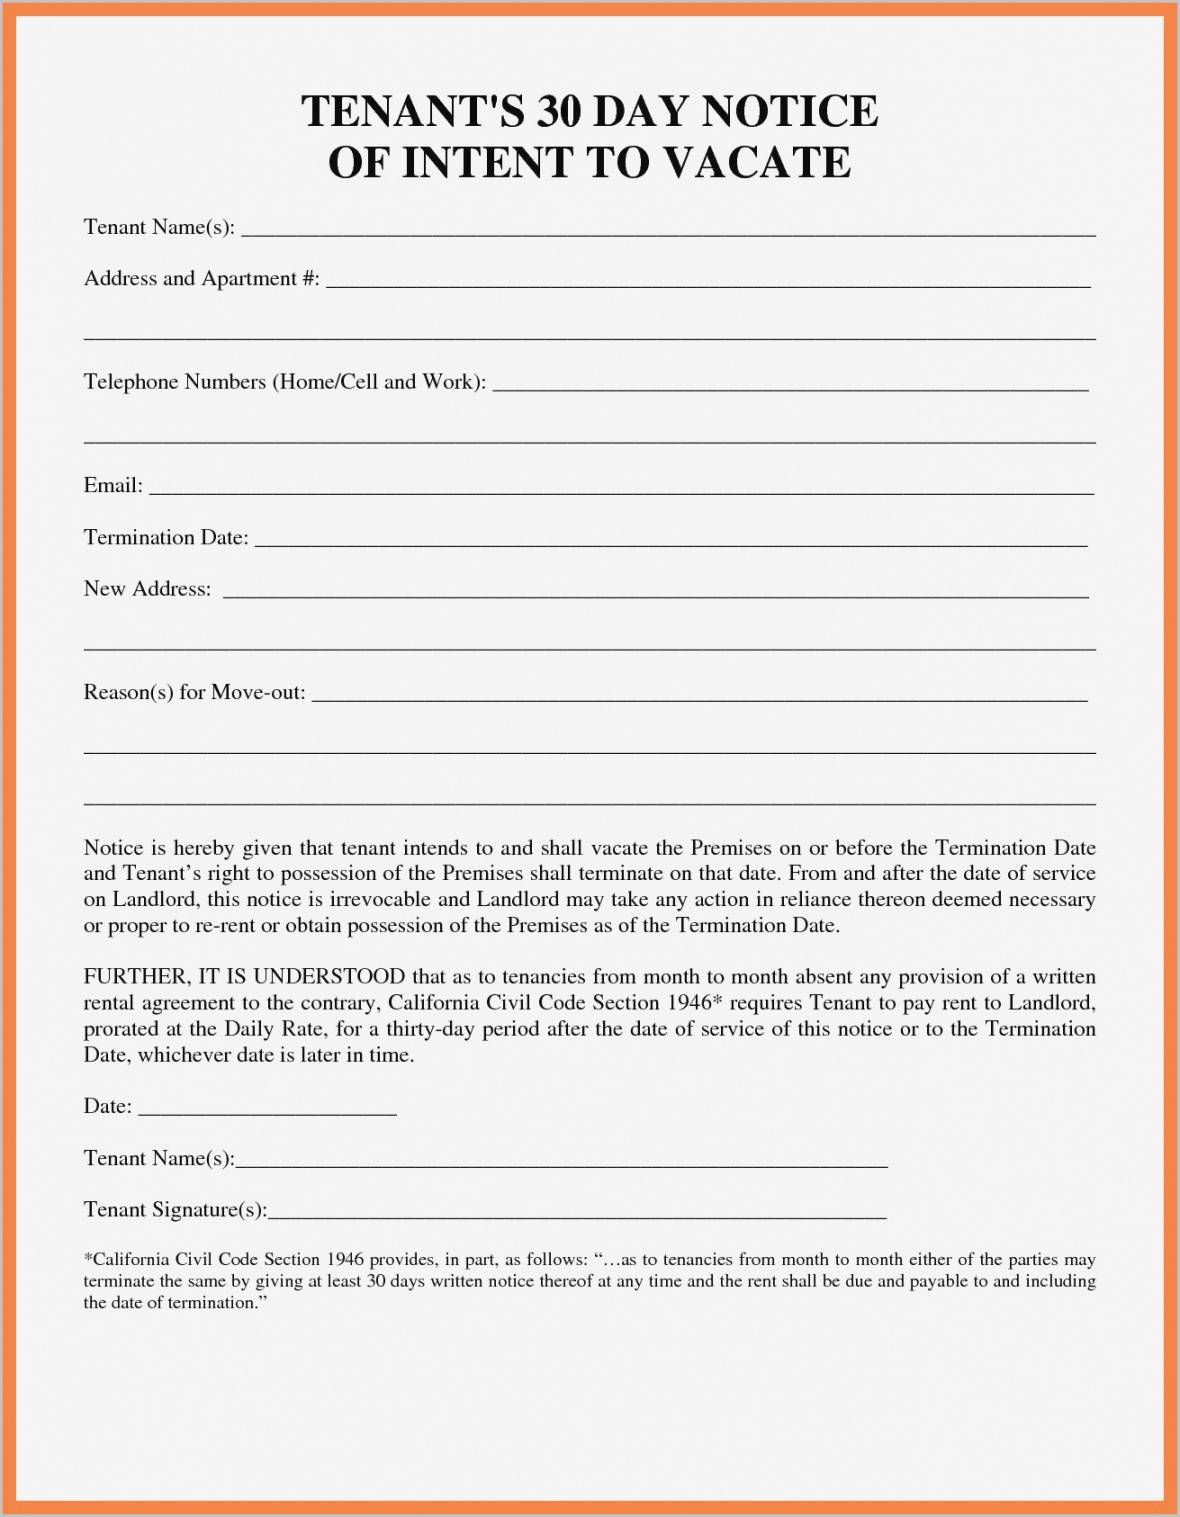 19 Notice Templates ideas  templates, being a landlord, eviction